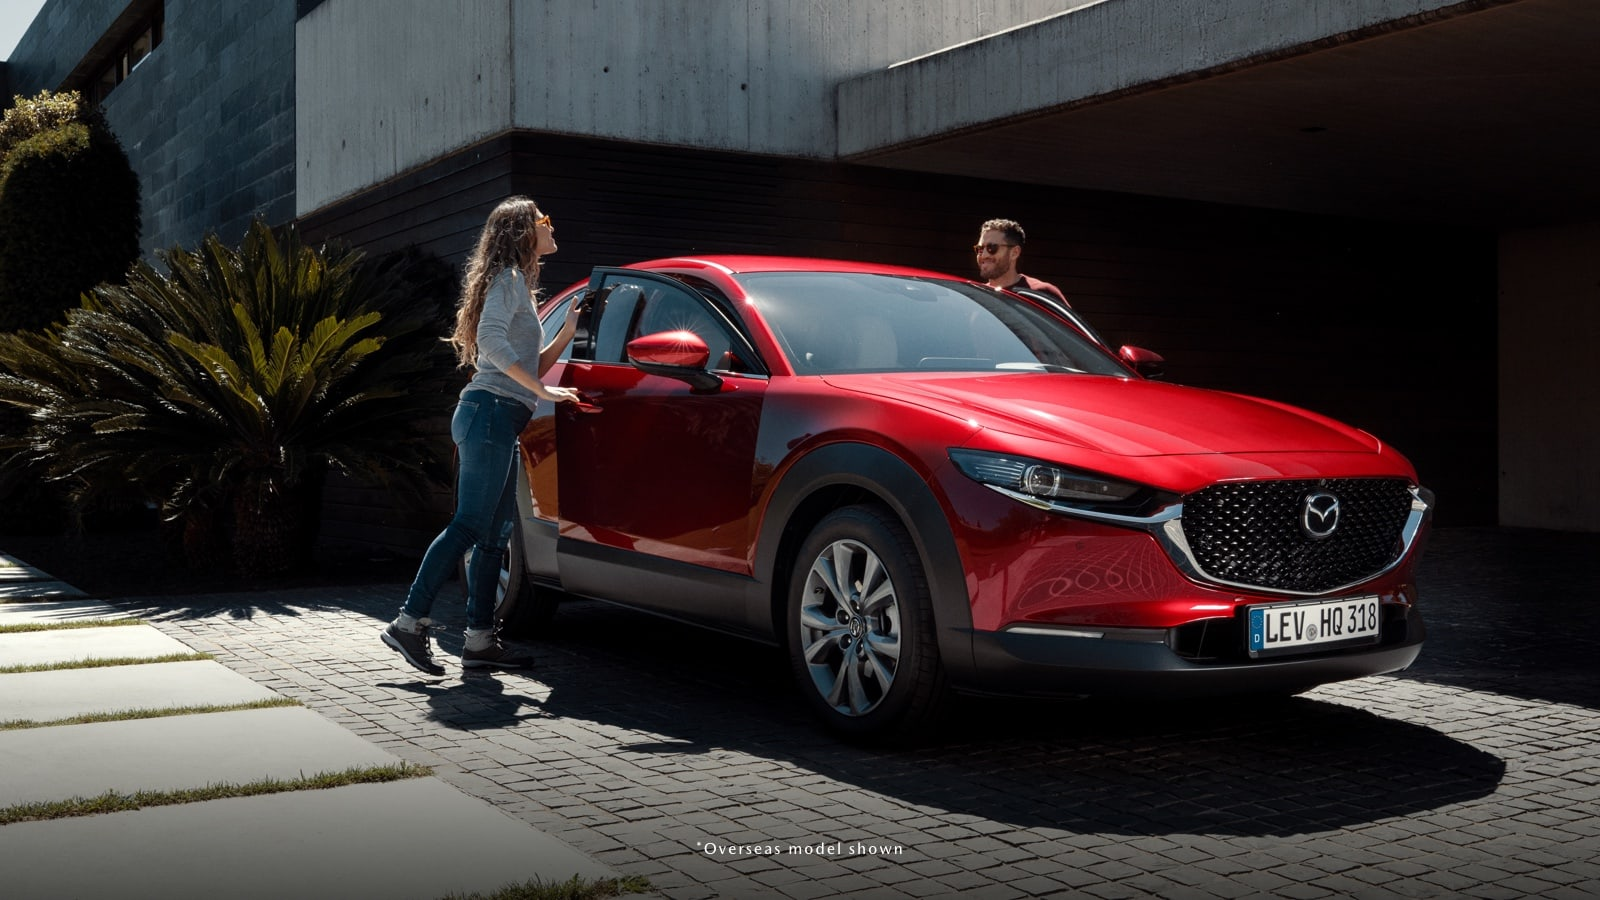 CX-30 Introducing Vision Technology